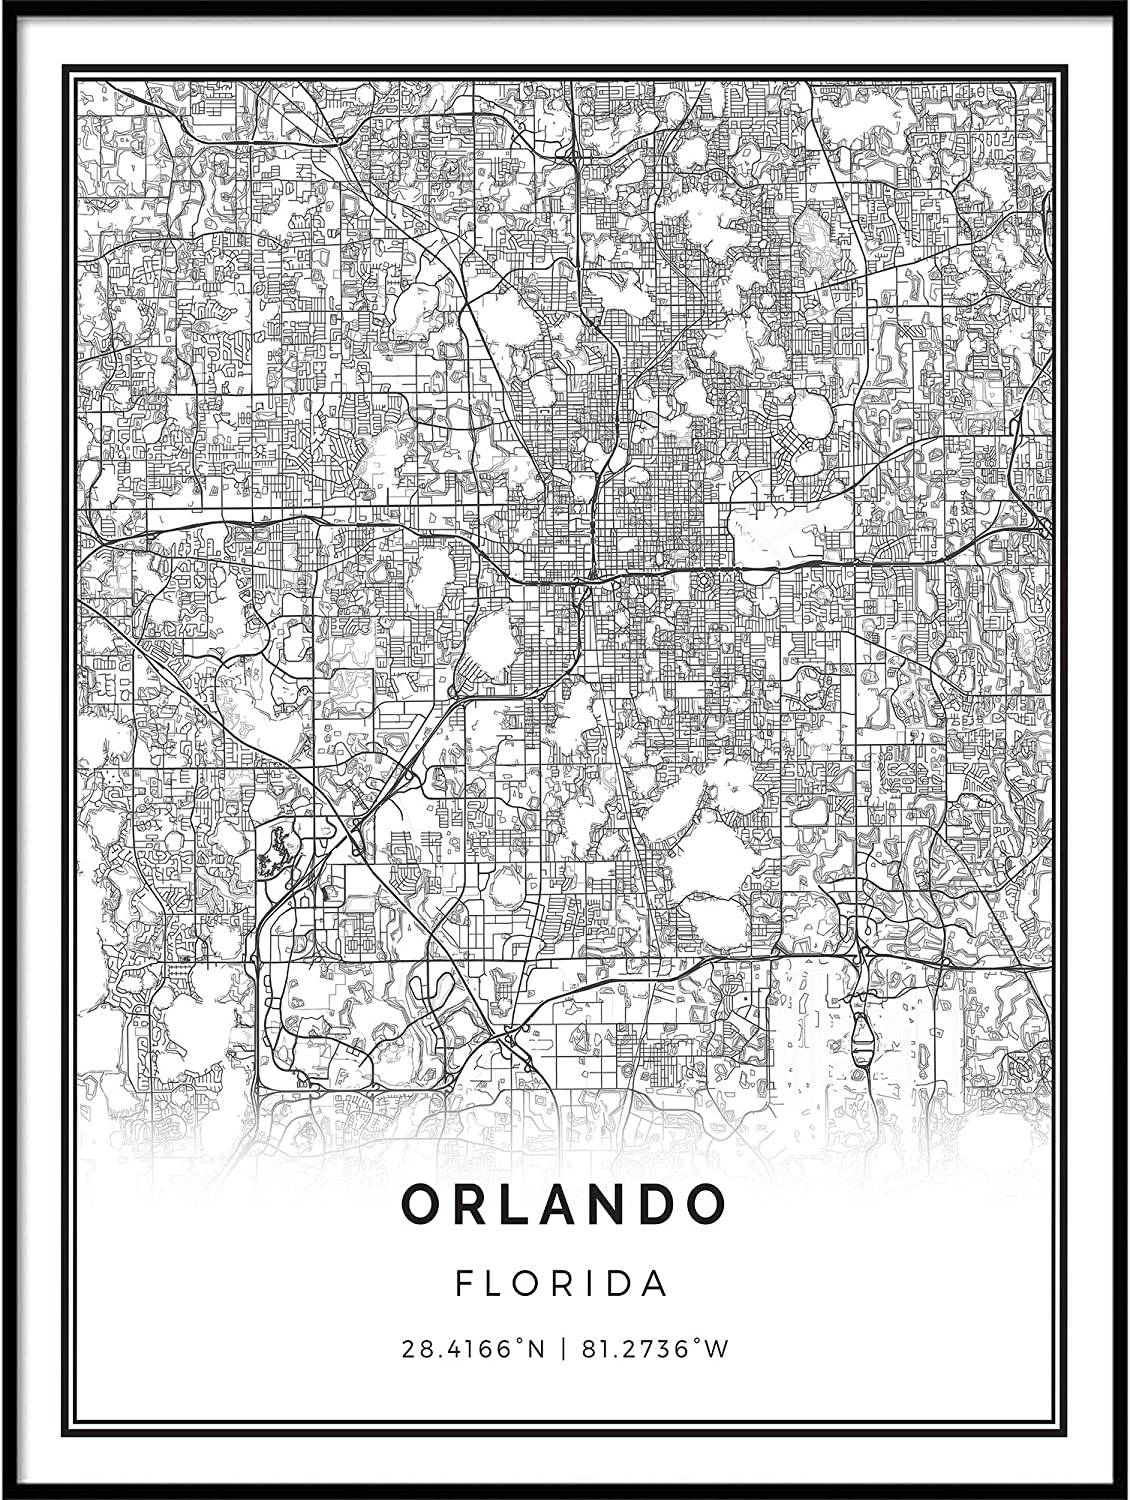 Squareious Orlando map Poster Print | Modern Black and White Wall Art | Scandinavian Home Decor | Florida City Prints Artwork | Fine Art Posters 24x36